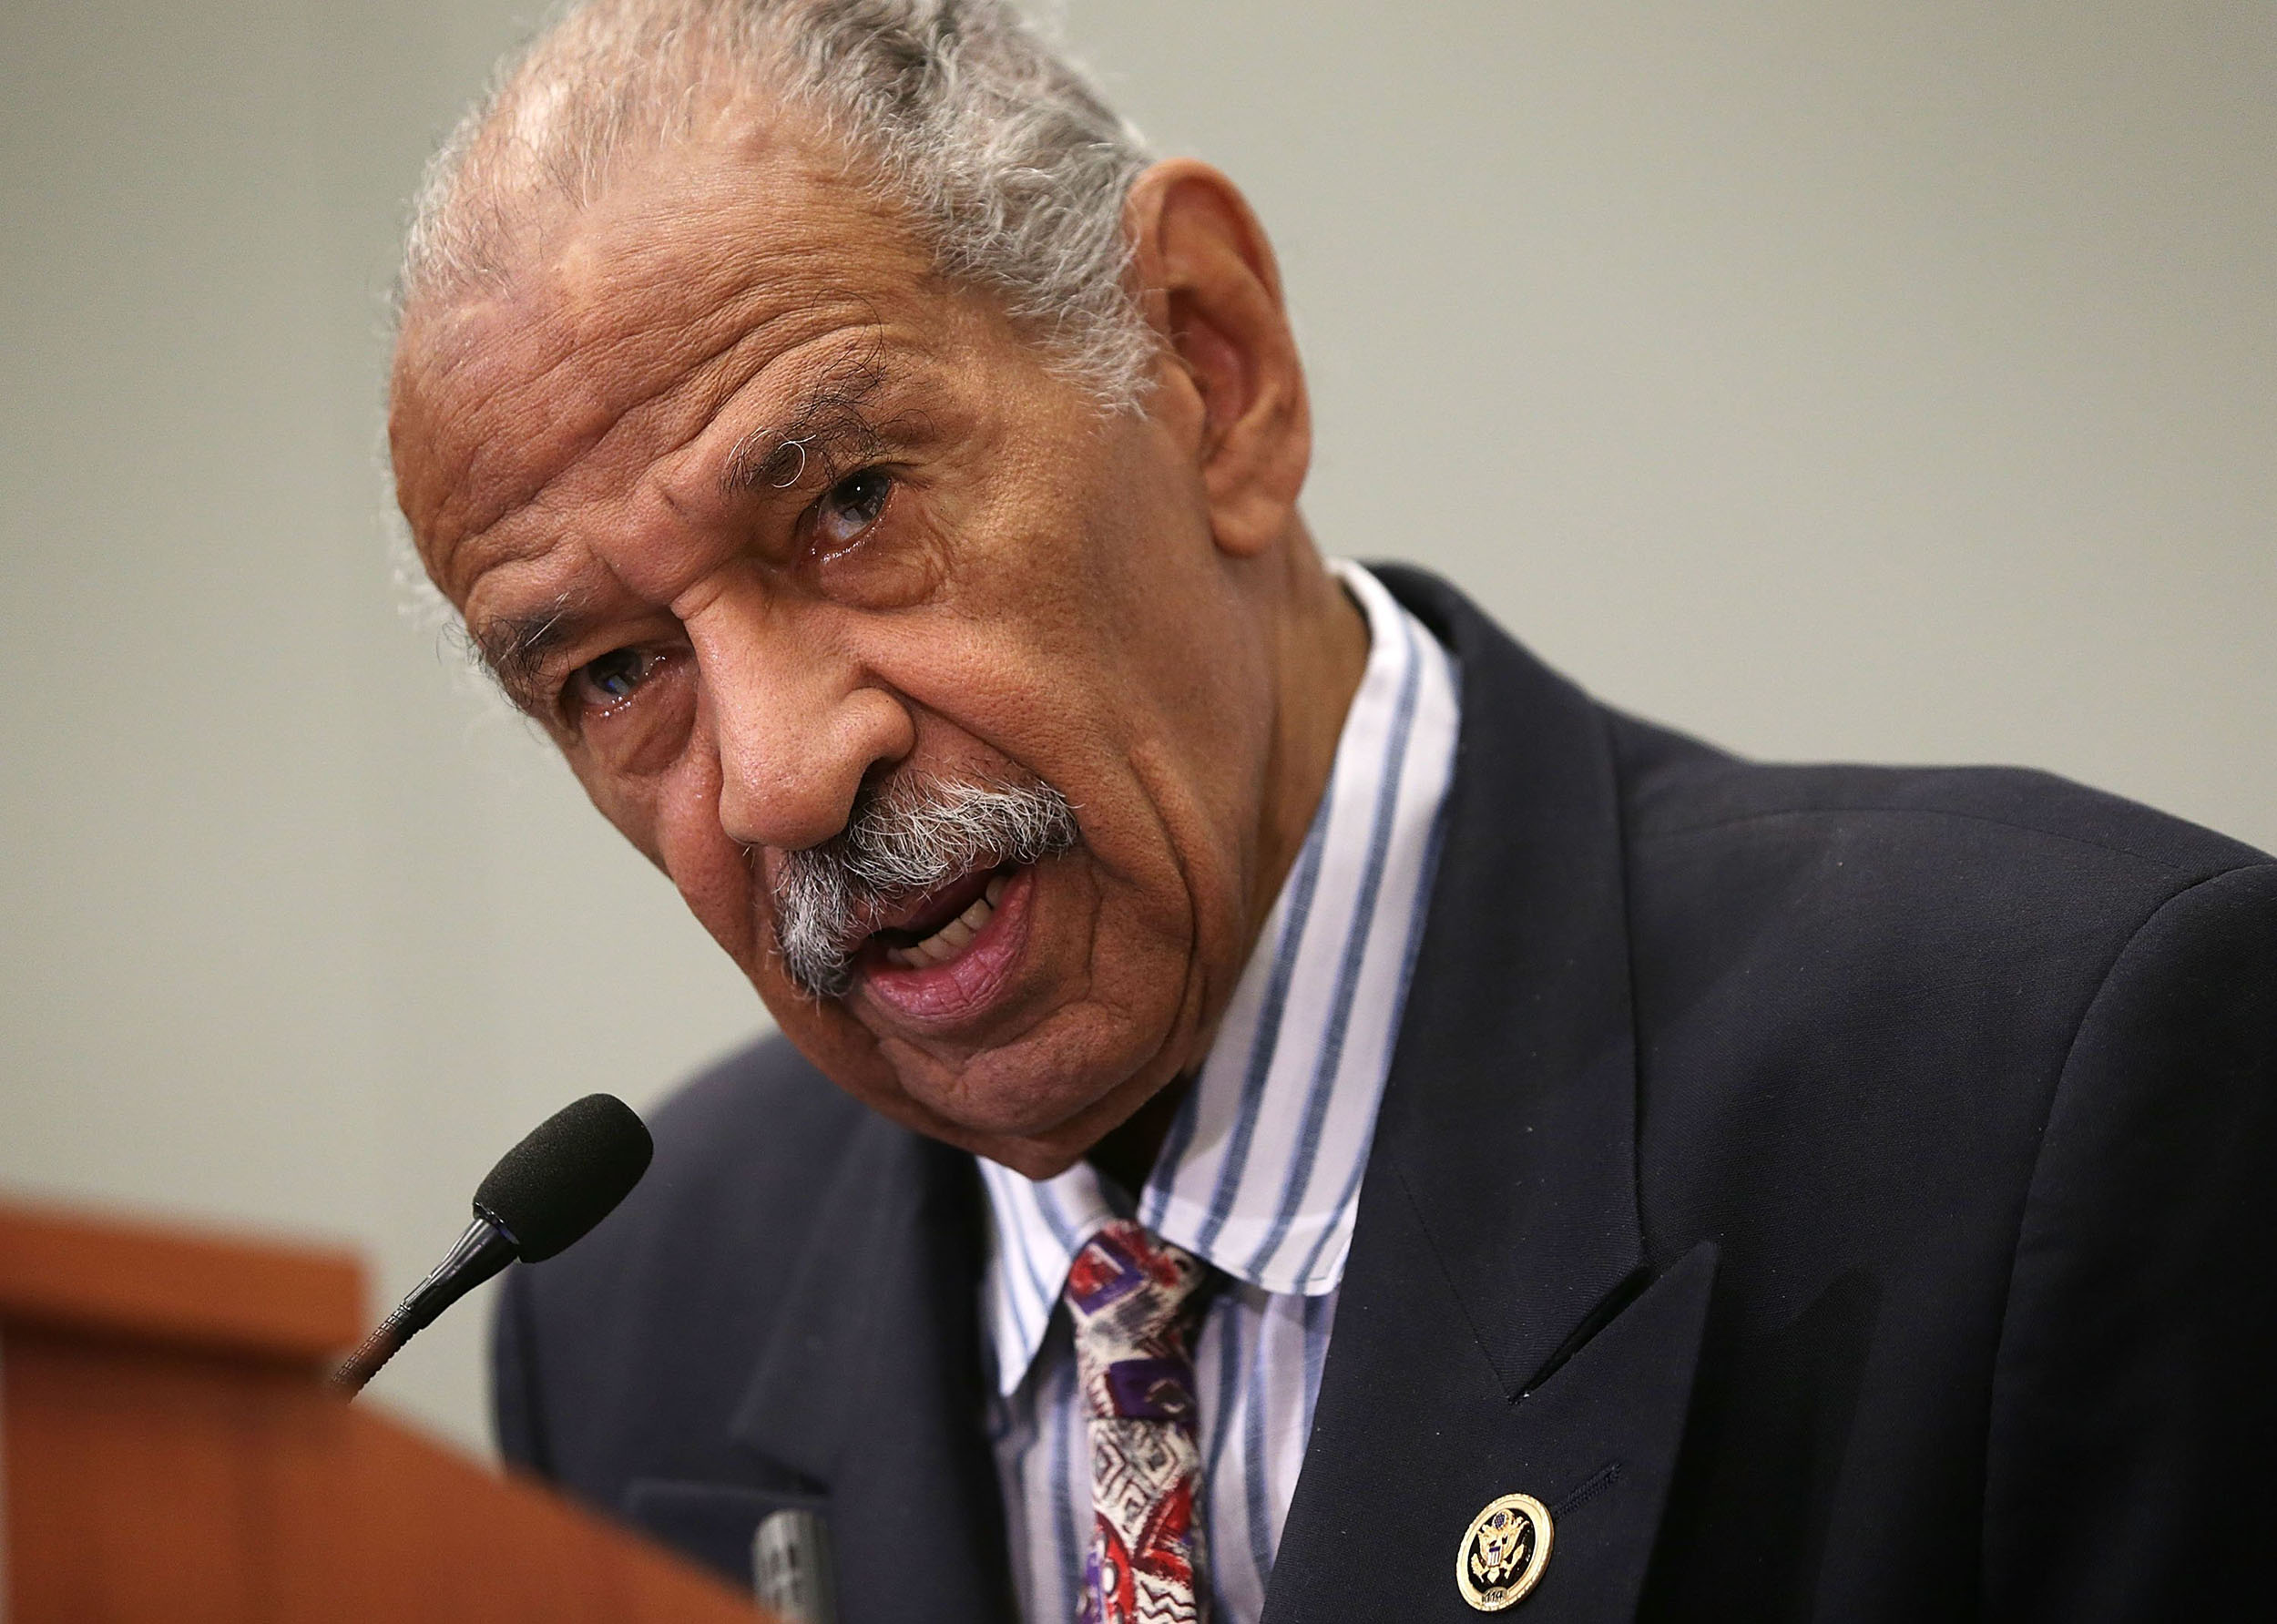 Conyers' seat in Congress won't be filled for almost a year